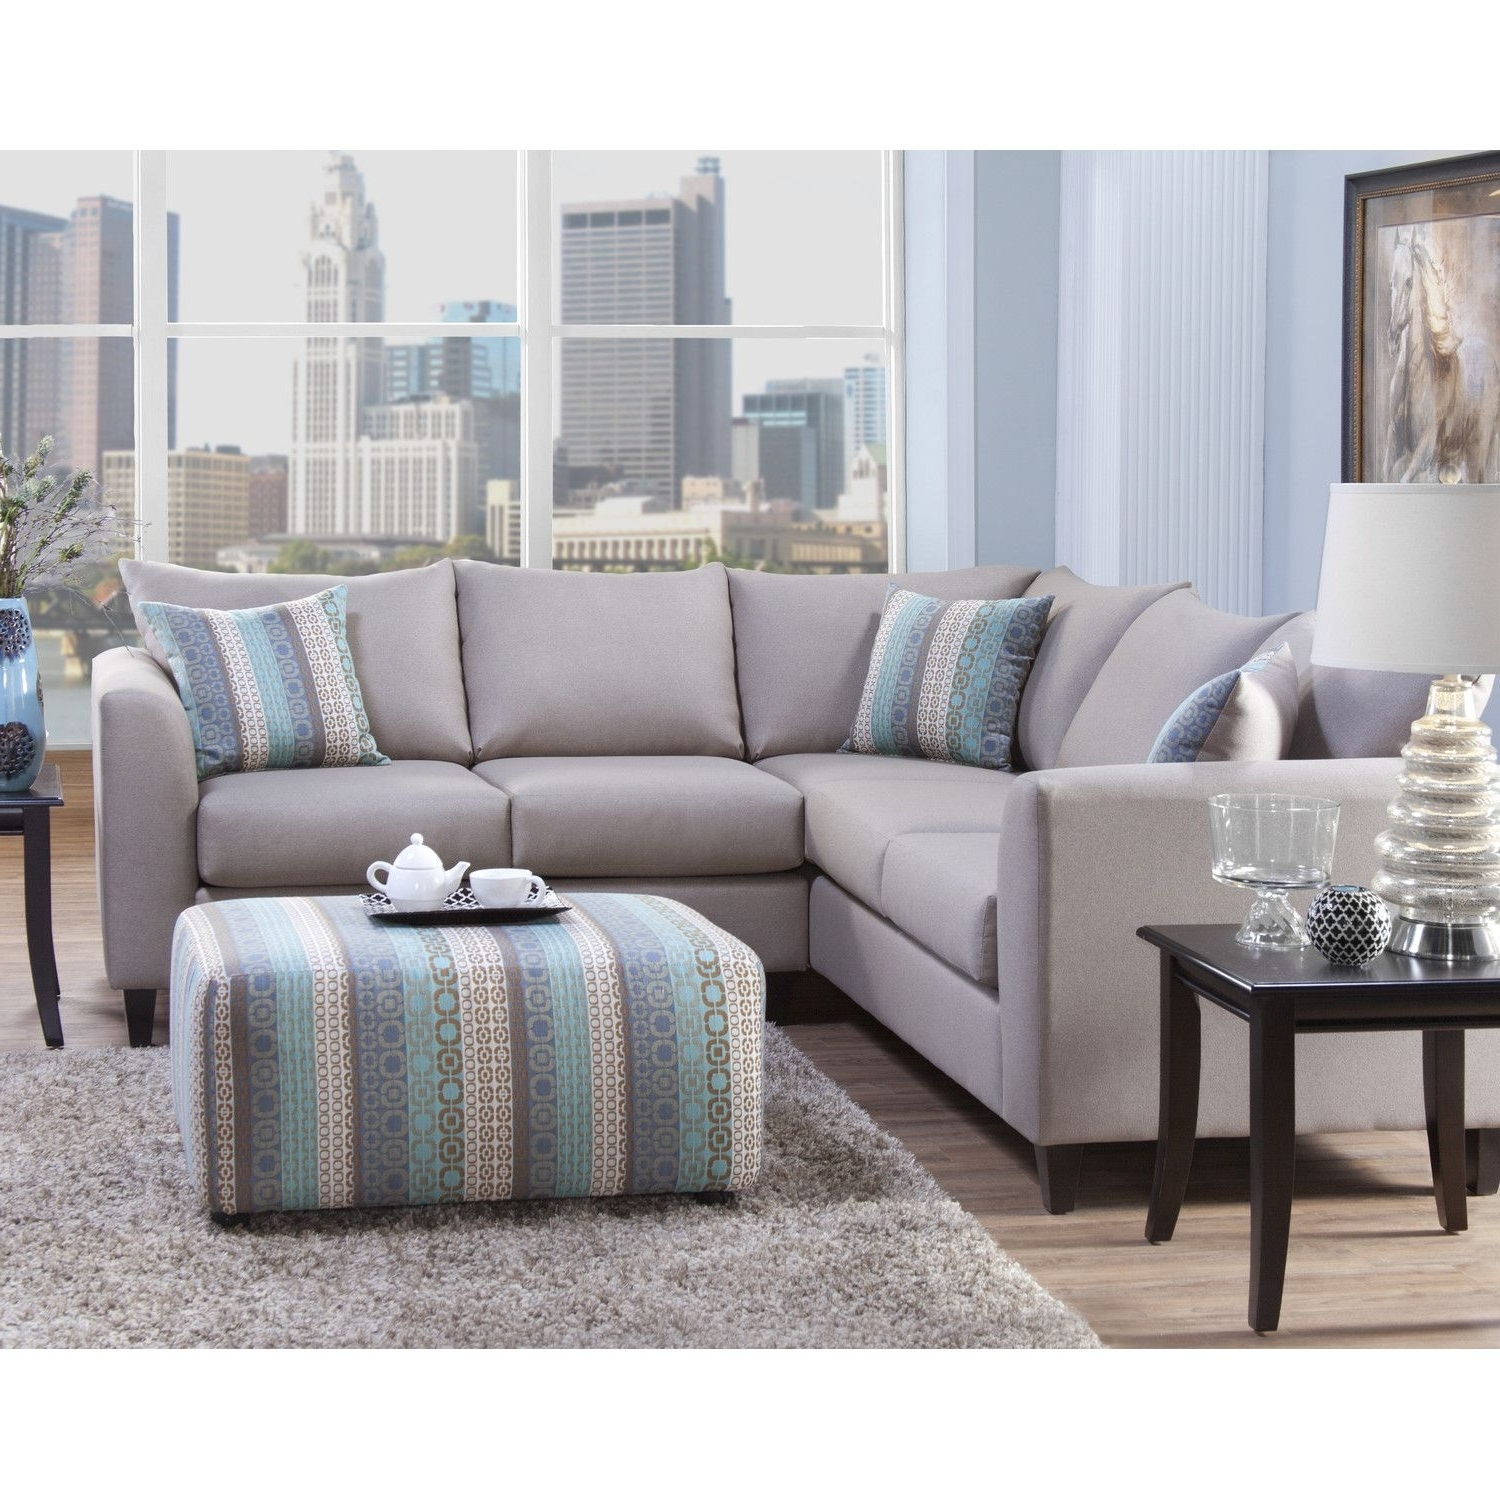 Free Shipping! Shop Wayfair For Serta Upholstery Sectional – Great Intended For Preferred Wayfair Sectional Sofas (View 3 of 20)